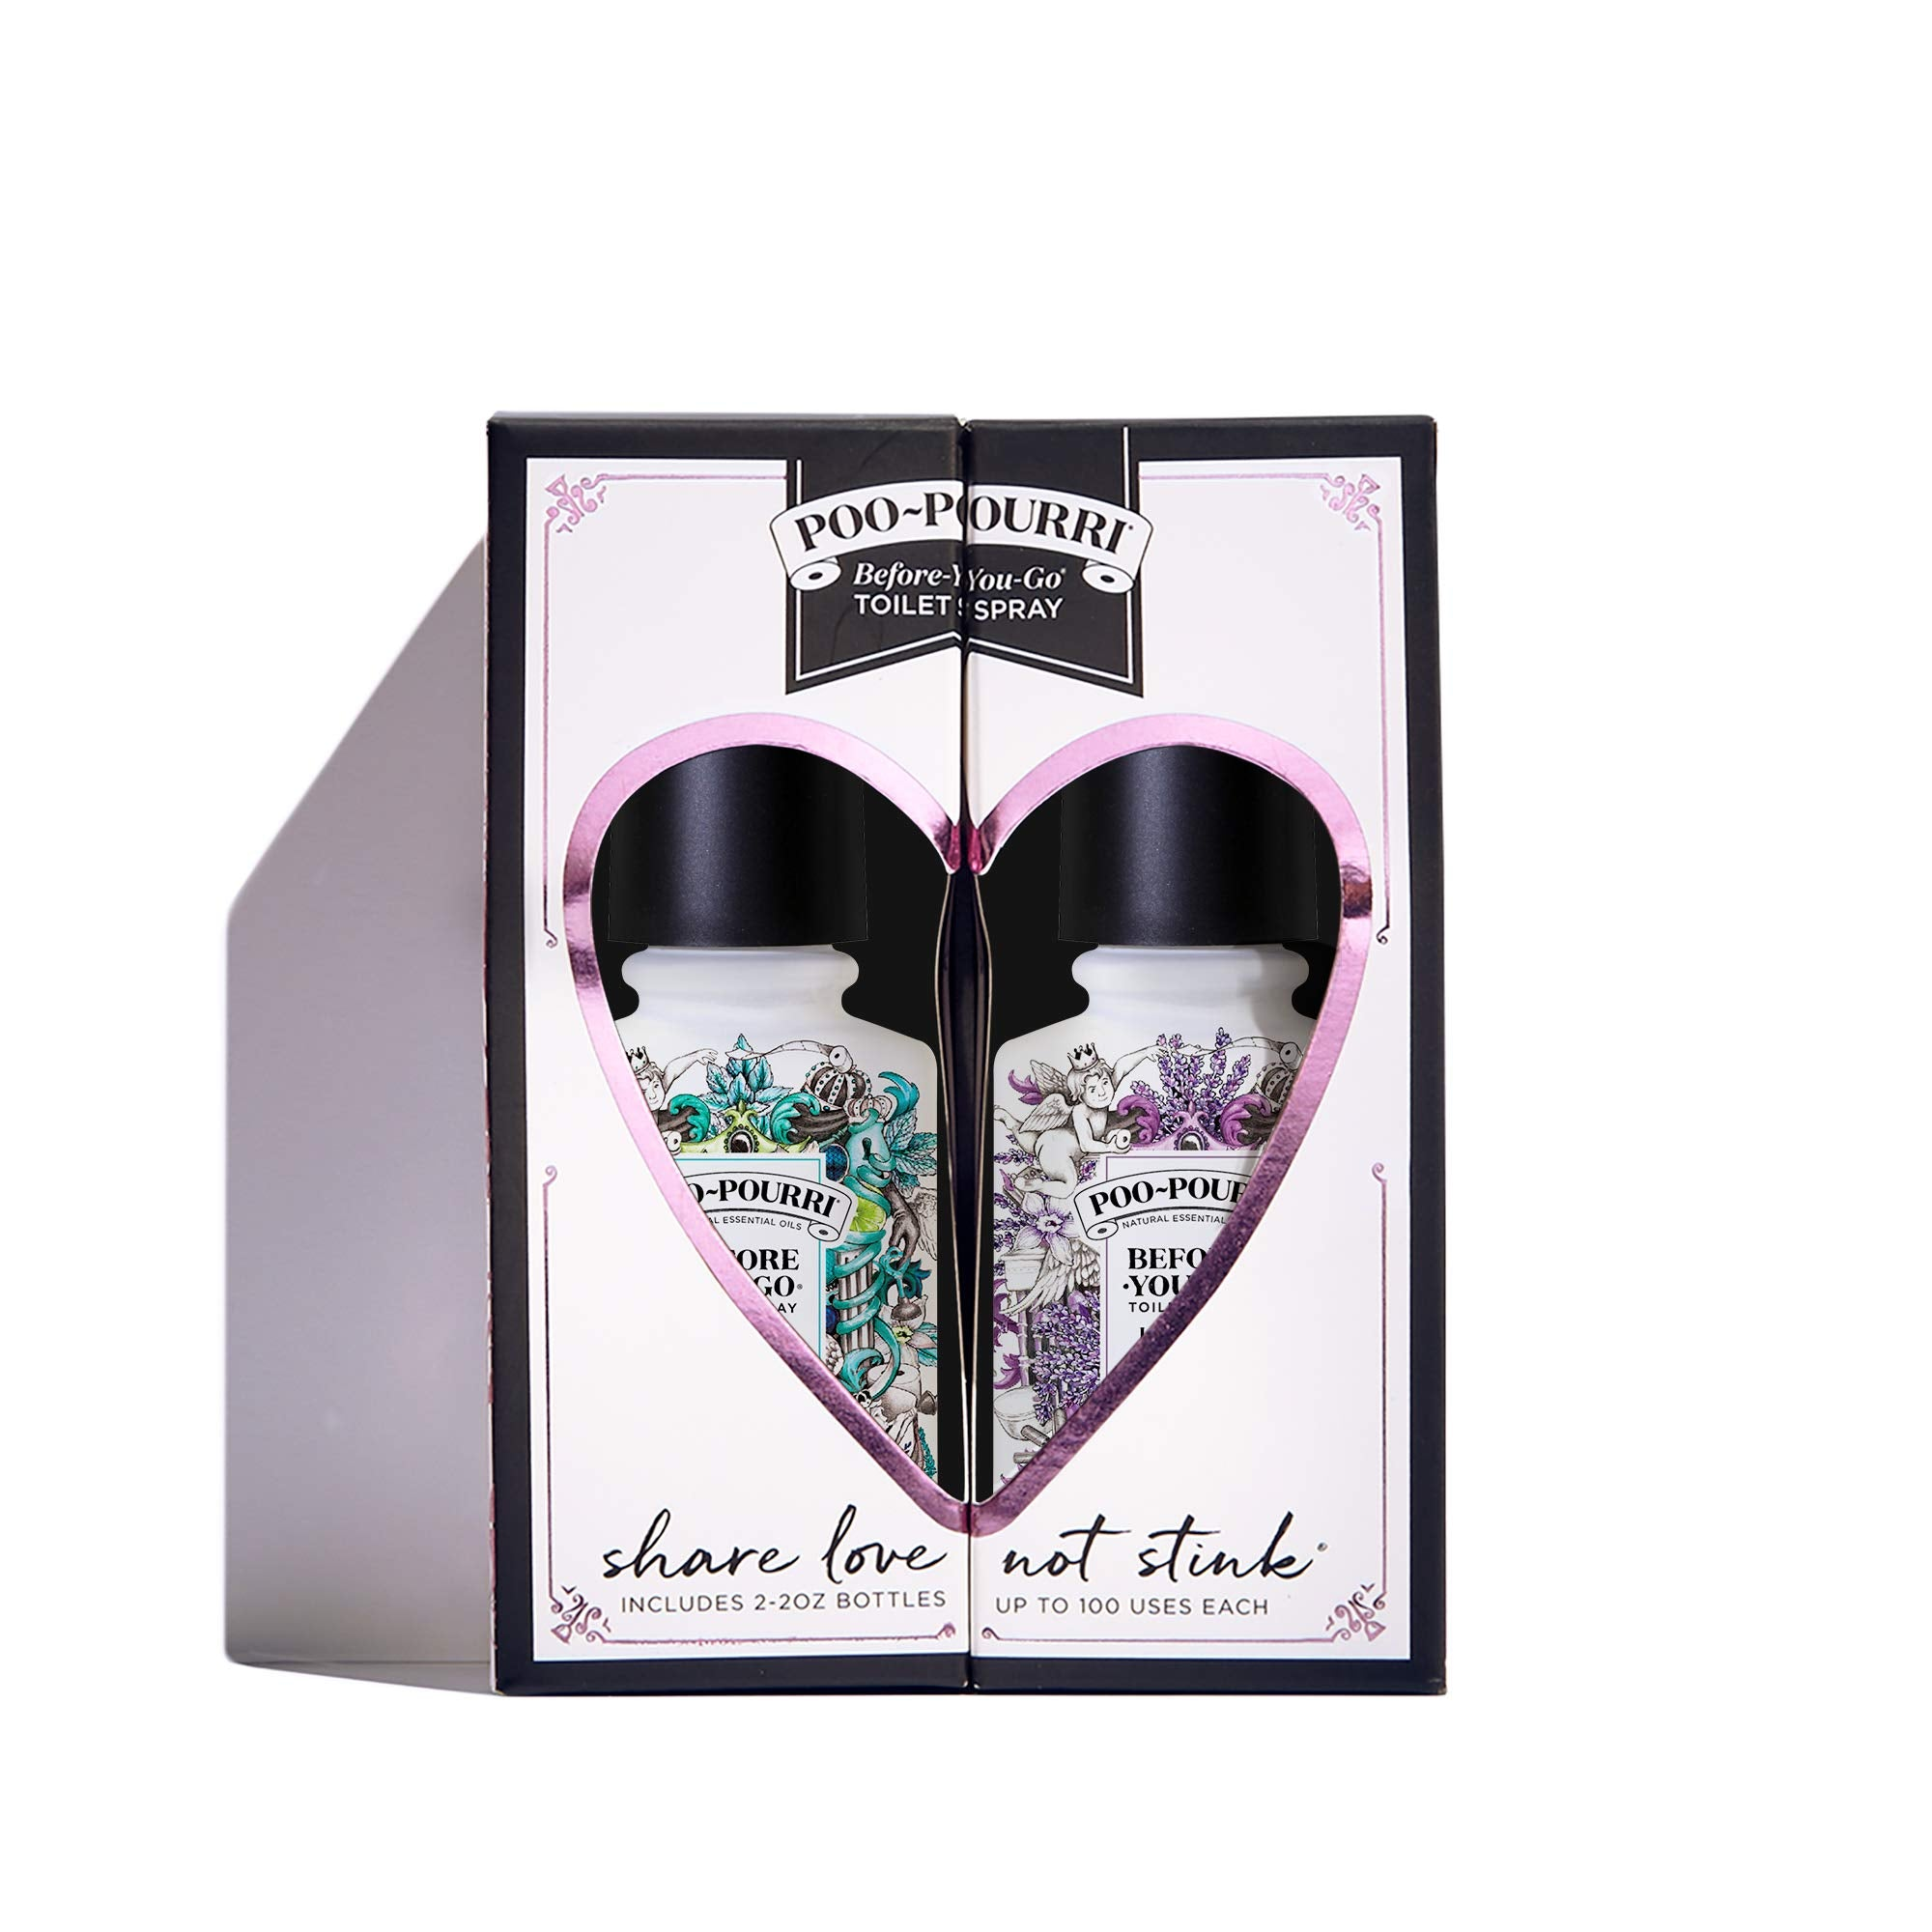 Poo-Pourri Before-You-Go Toilet Spray, Share Love Not Stink Set of 2, Vanilla Mint & Lavender Vanilla Scent